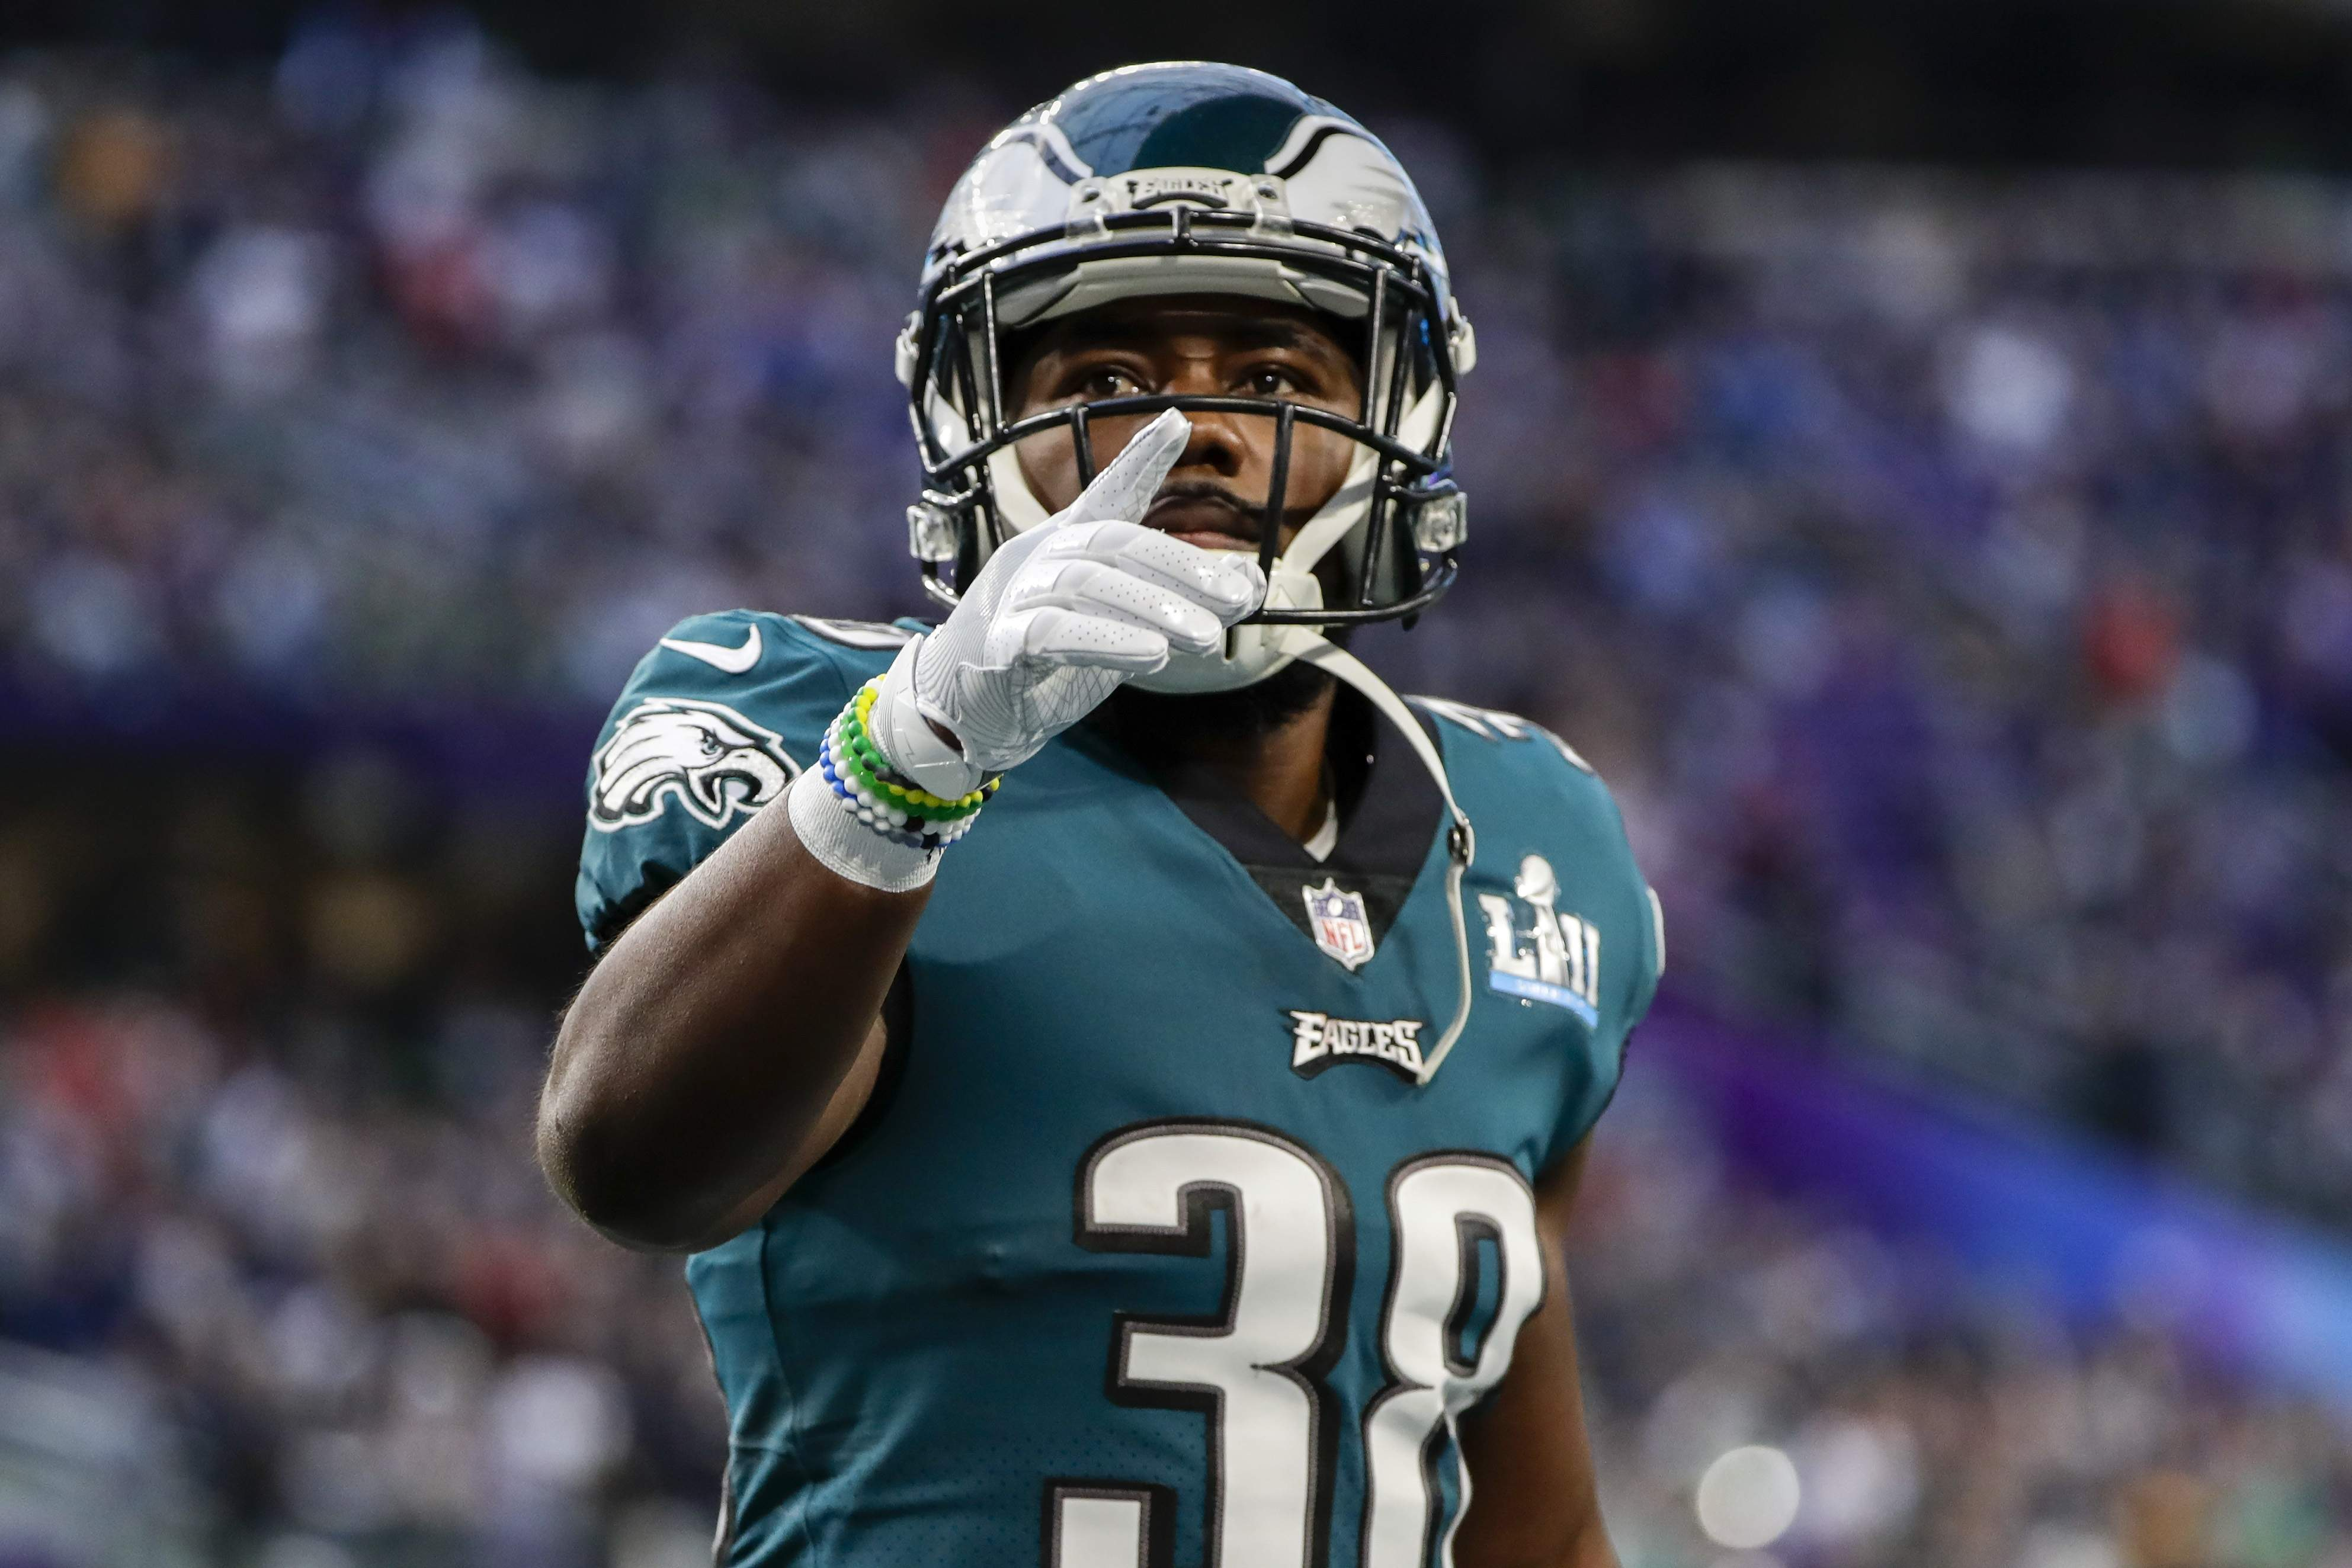 Philadelphia Eagles running back Kenjon Barner (38), warms up before the NFL Super Bowl 52 football game against the New England Patriots, Sunday, Feb. 4, 2018, in Minneapolis. (AP Photo/Frank Franklin II)